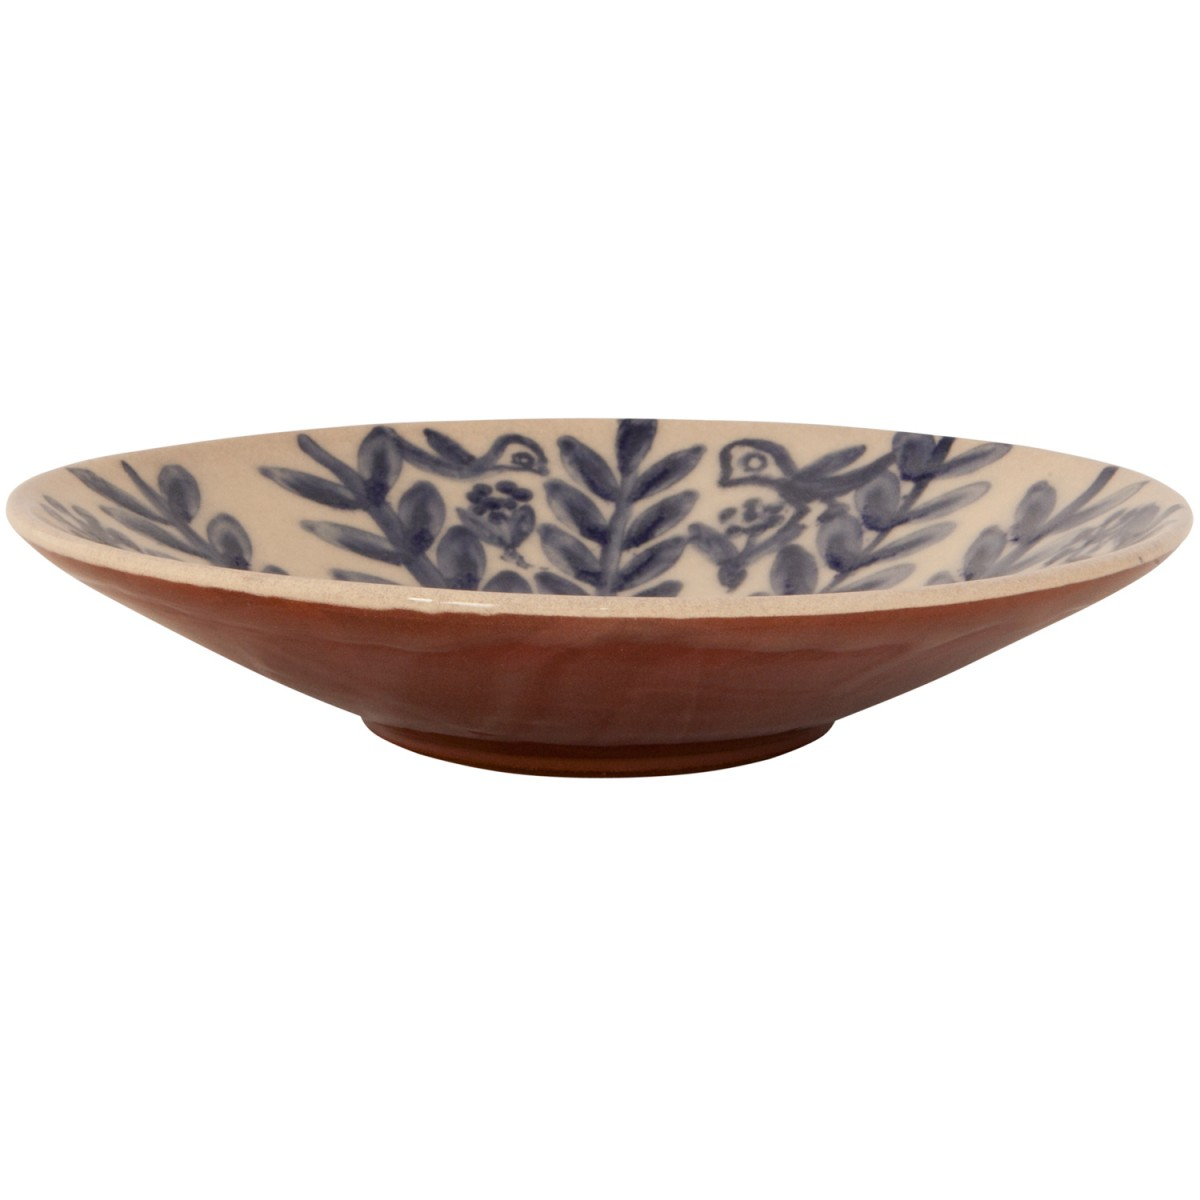 Decorative Bowl for Coffee Table - Birds on flowers-1